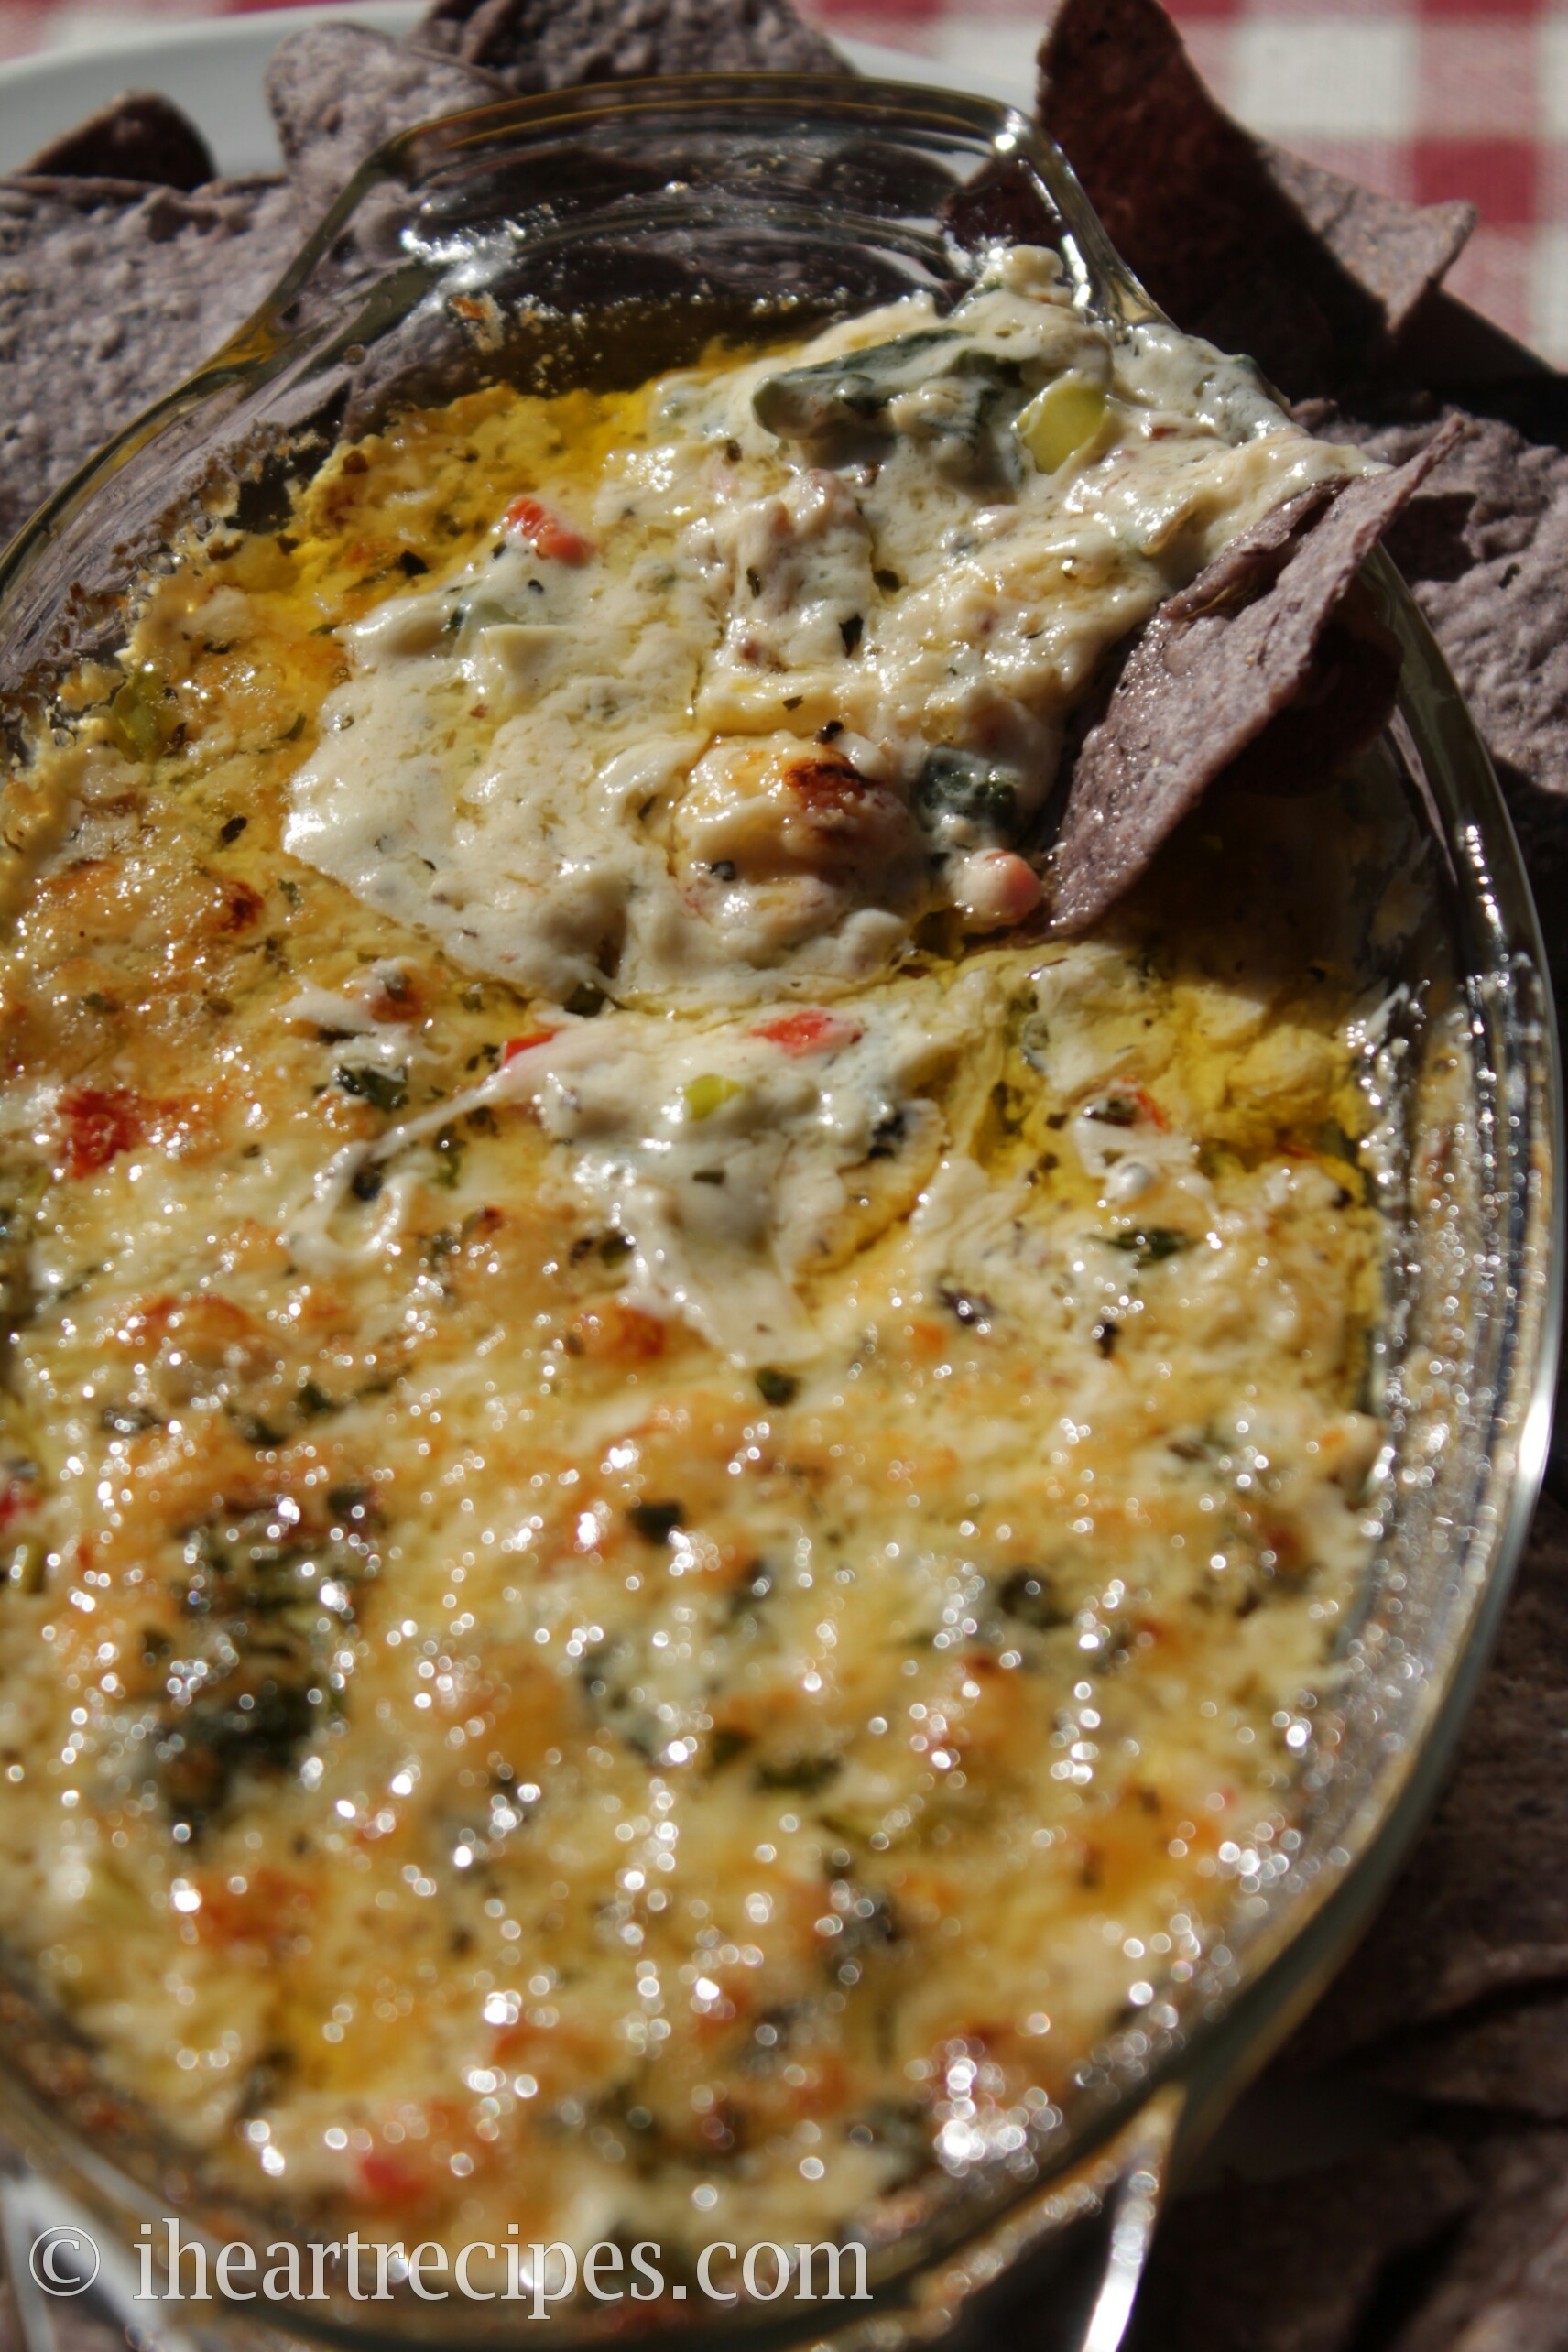 This Bacon, Rainbow Chard and Artichoke Dip is creamy, cheesy and smoky.